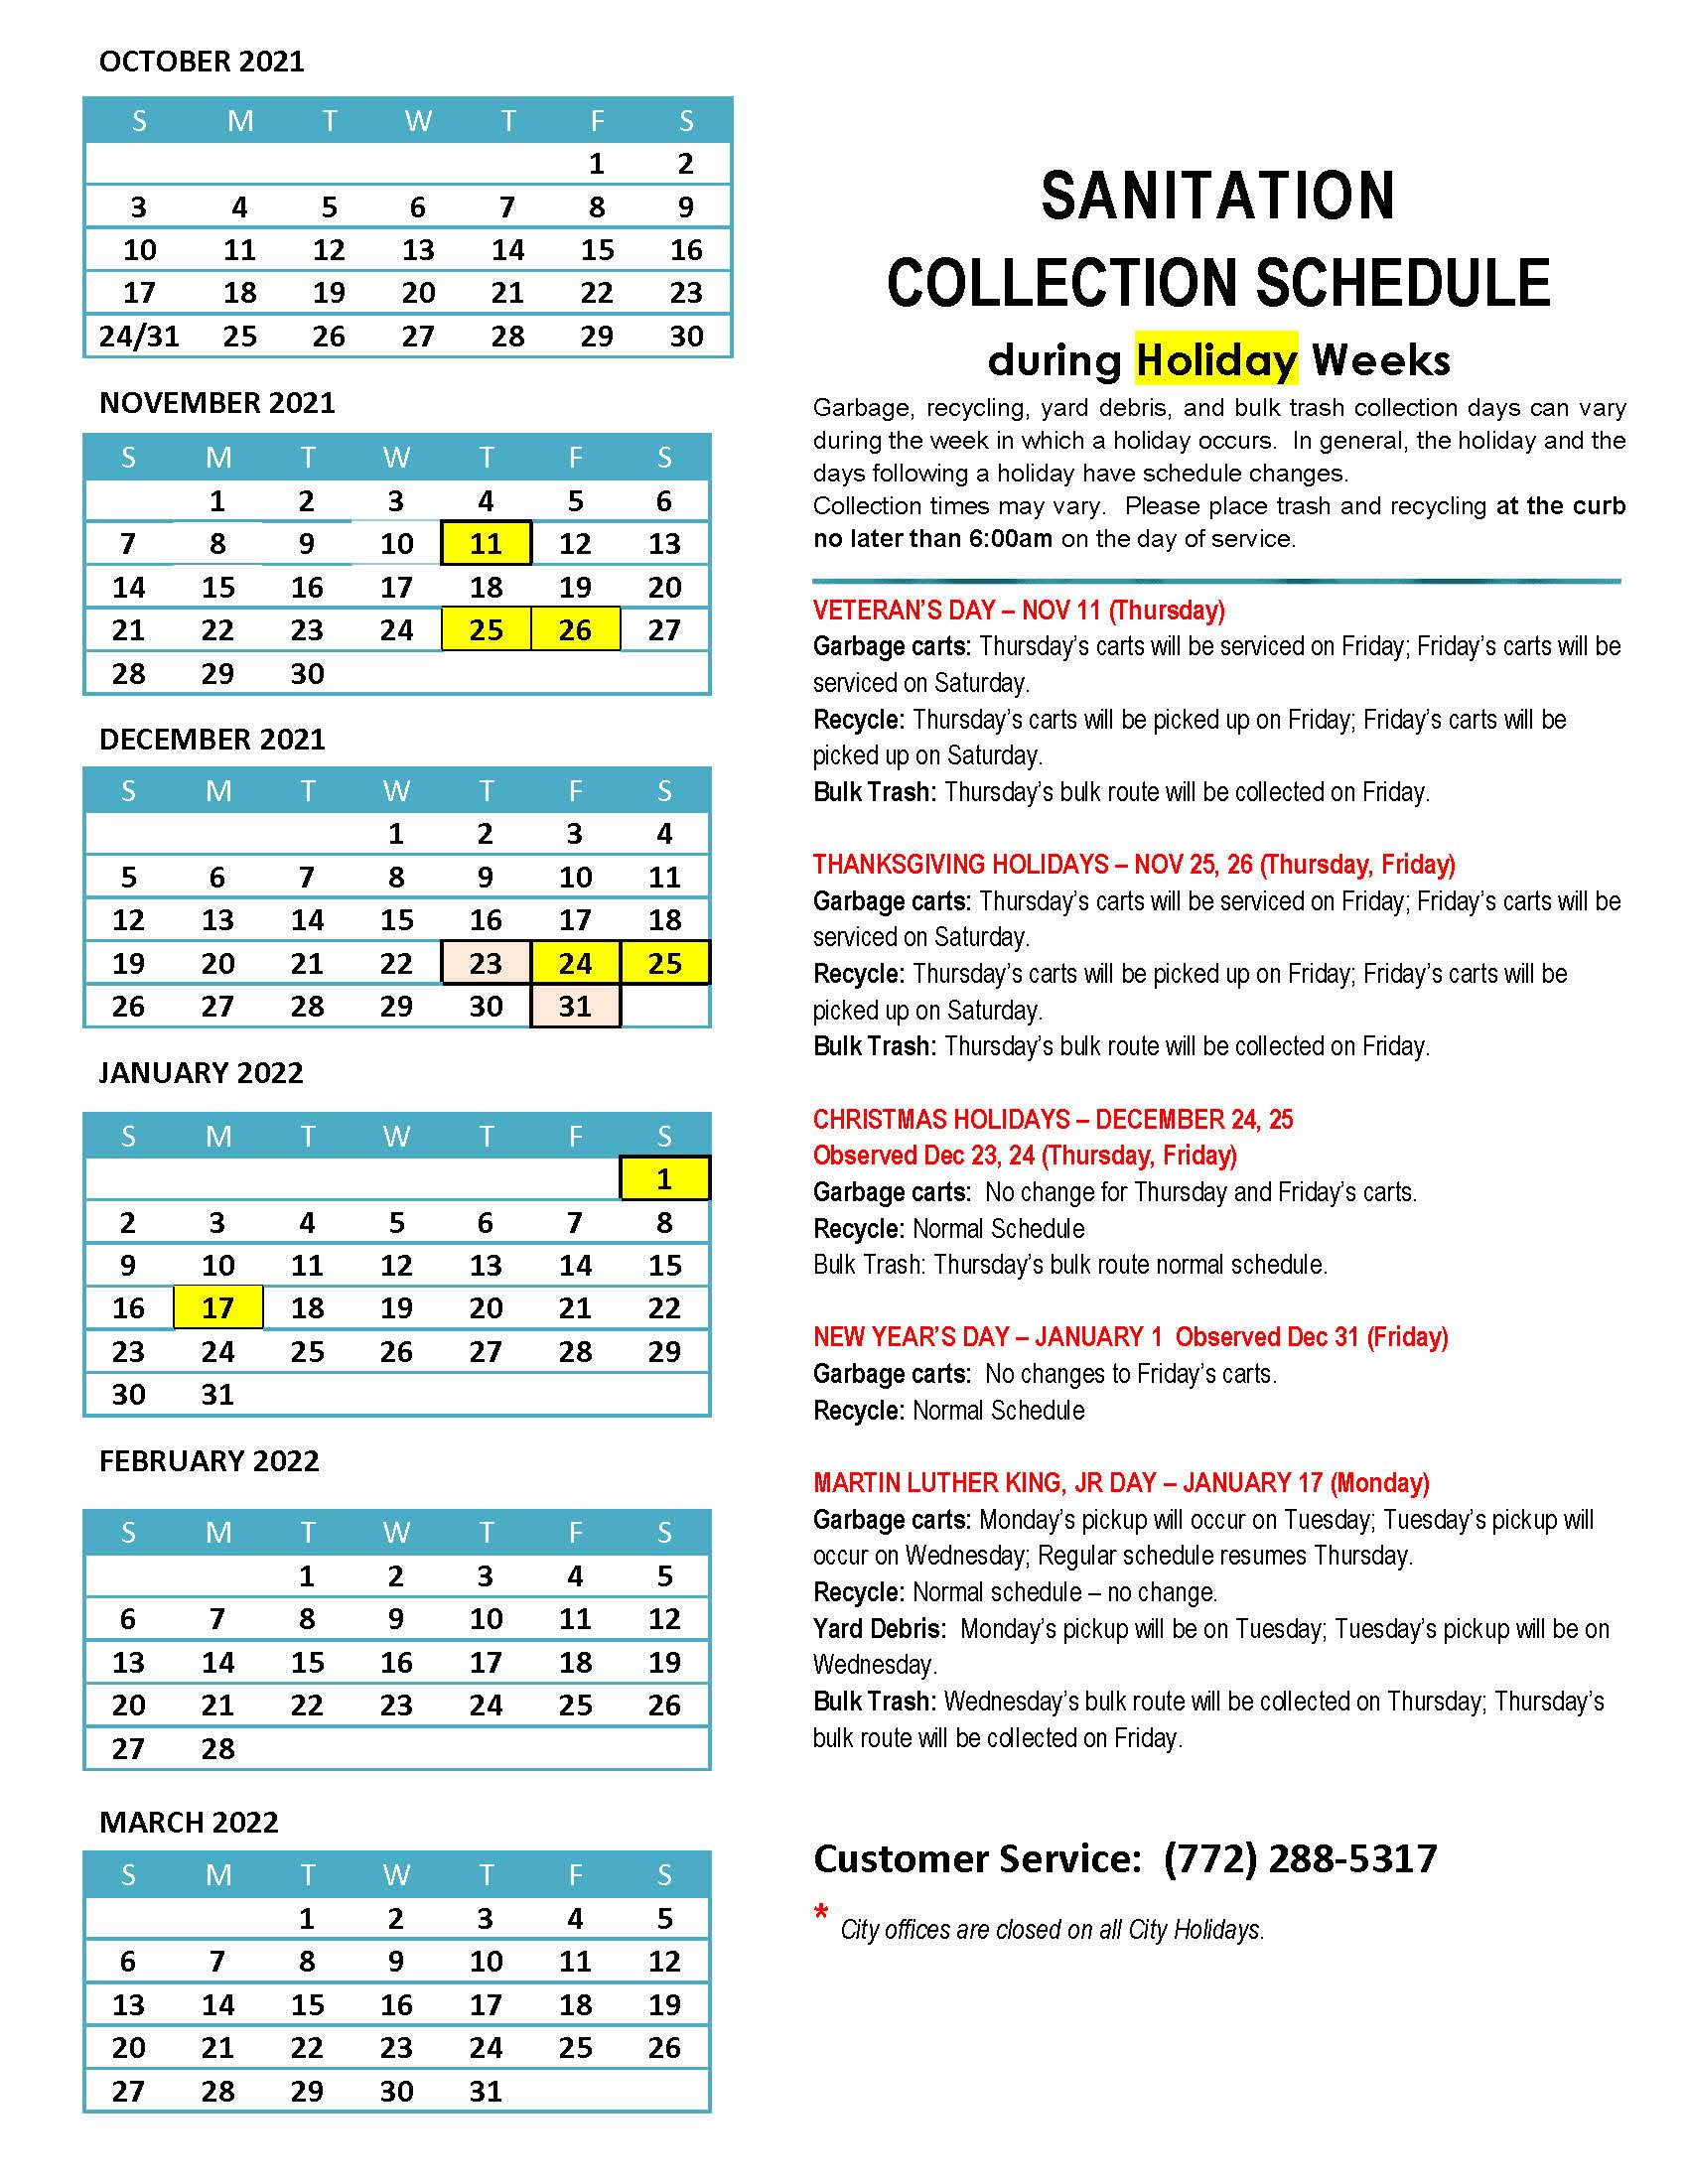 2020-2021 Sanitation Collection Schedule during Holiday Weeks_Page_2 April-Sept.